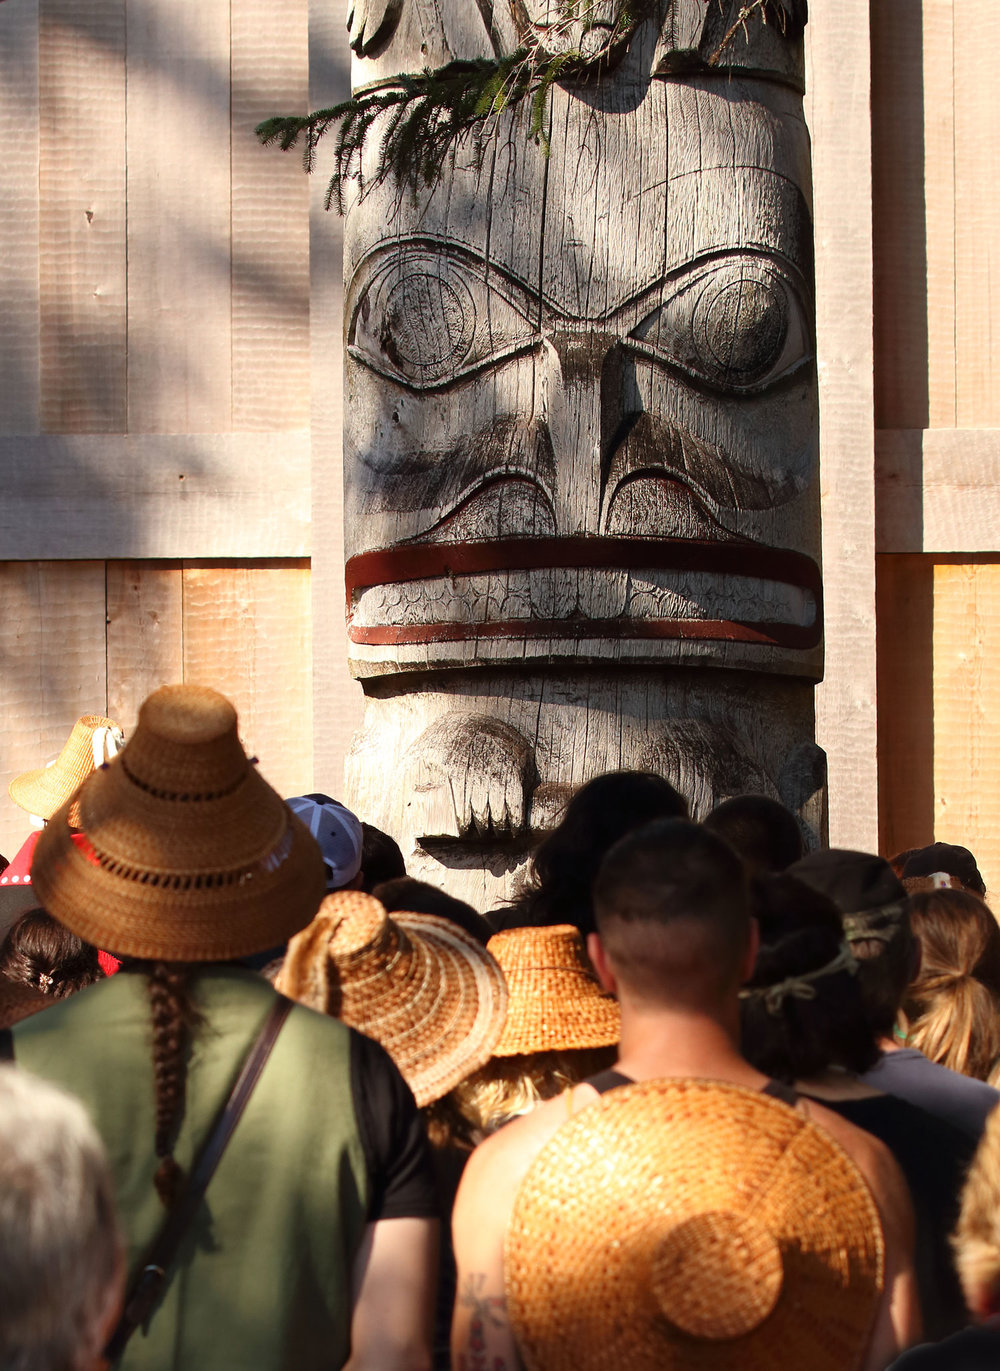 There was a big crowd at the Whale House. The frontal totem in this photo is huge and towers over 50 feet high.